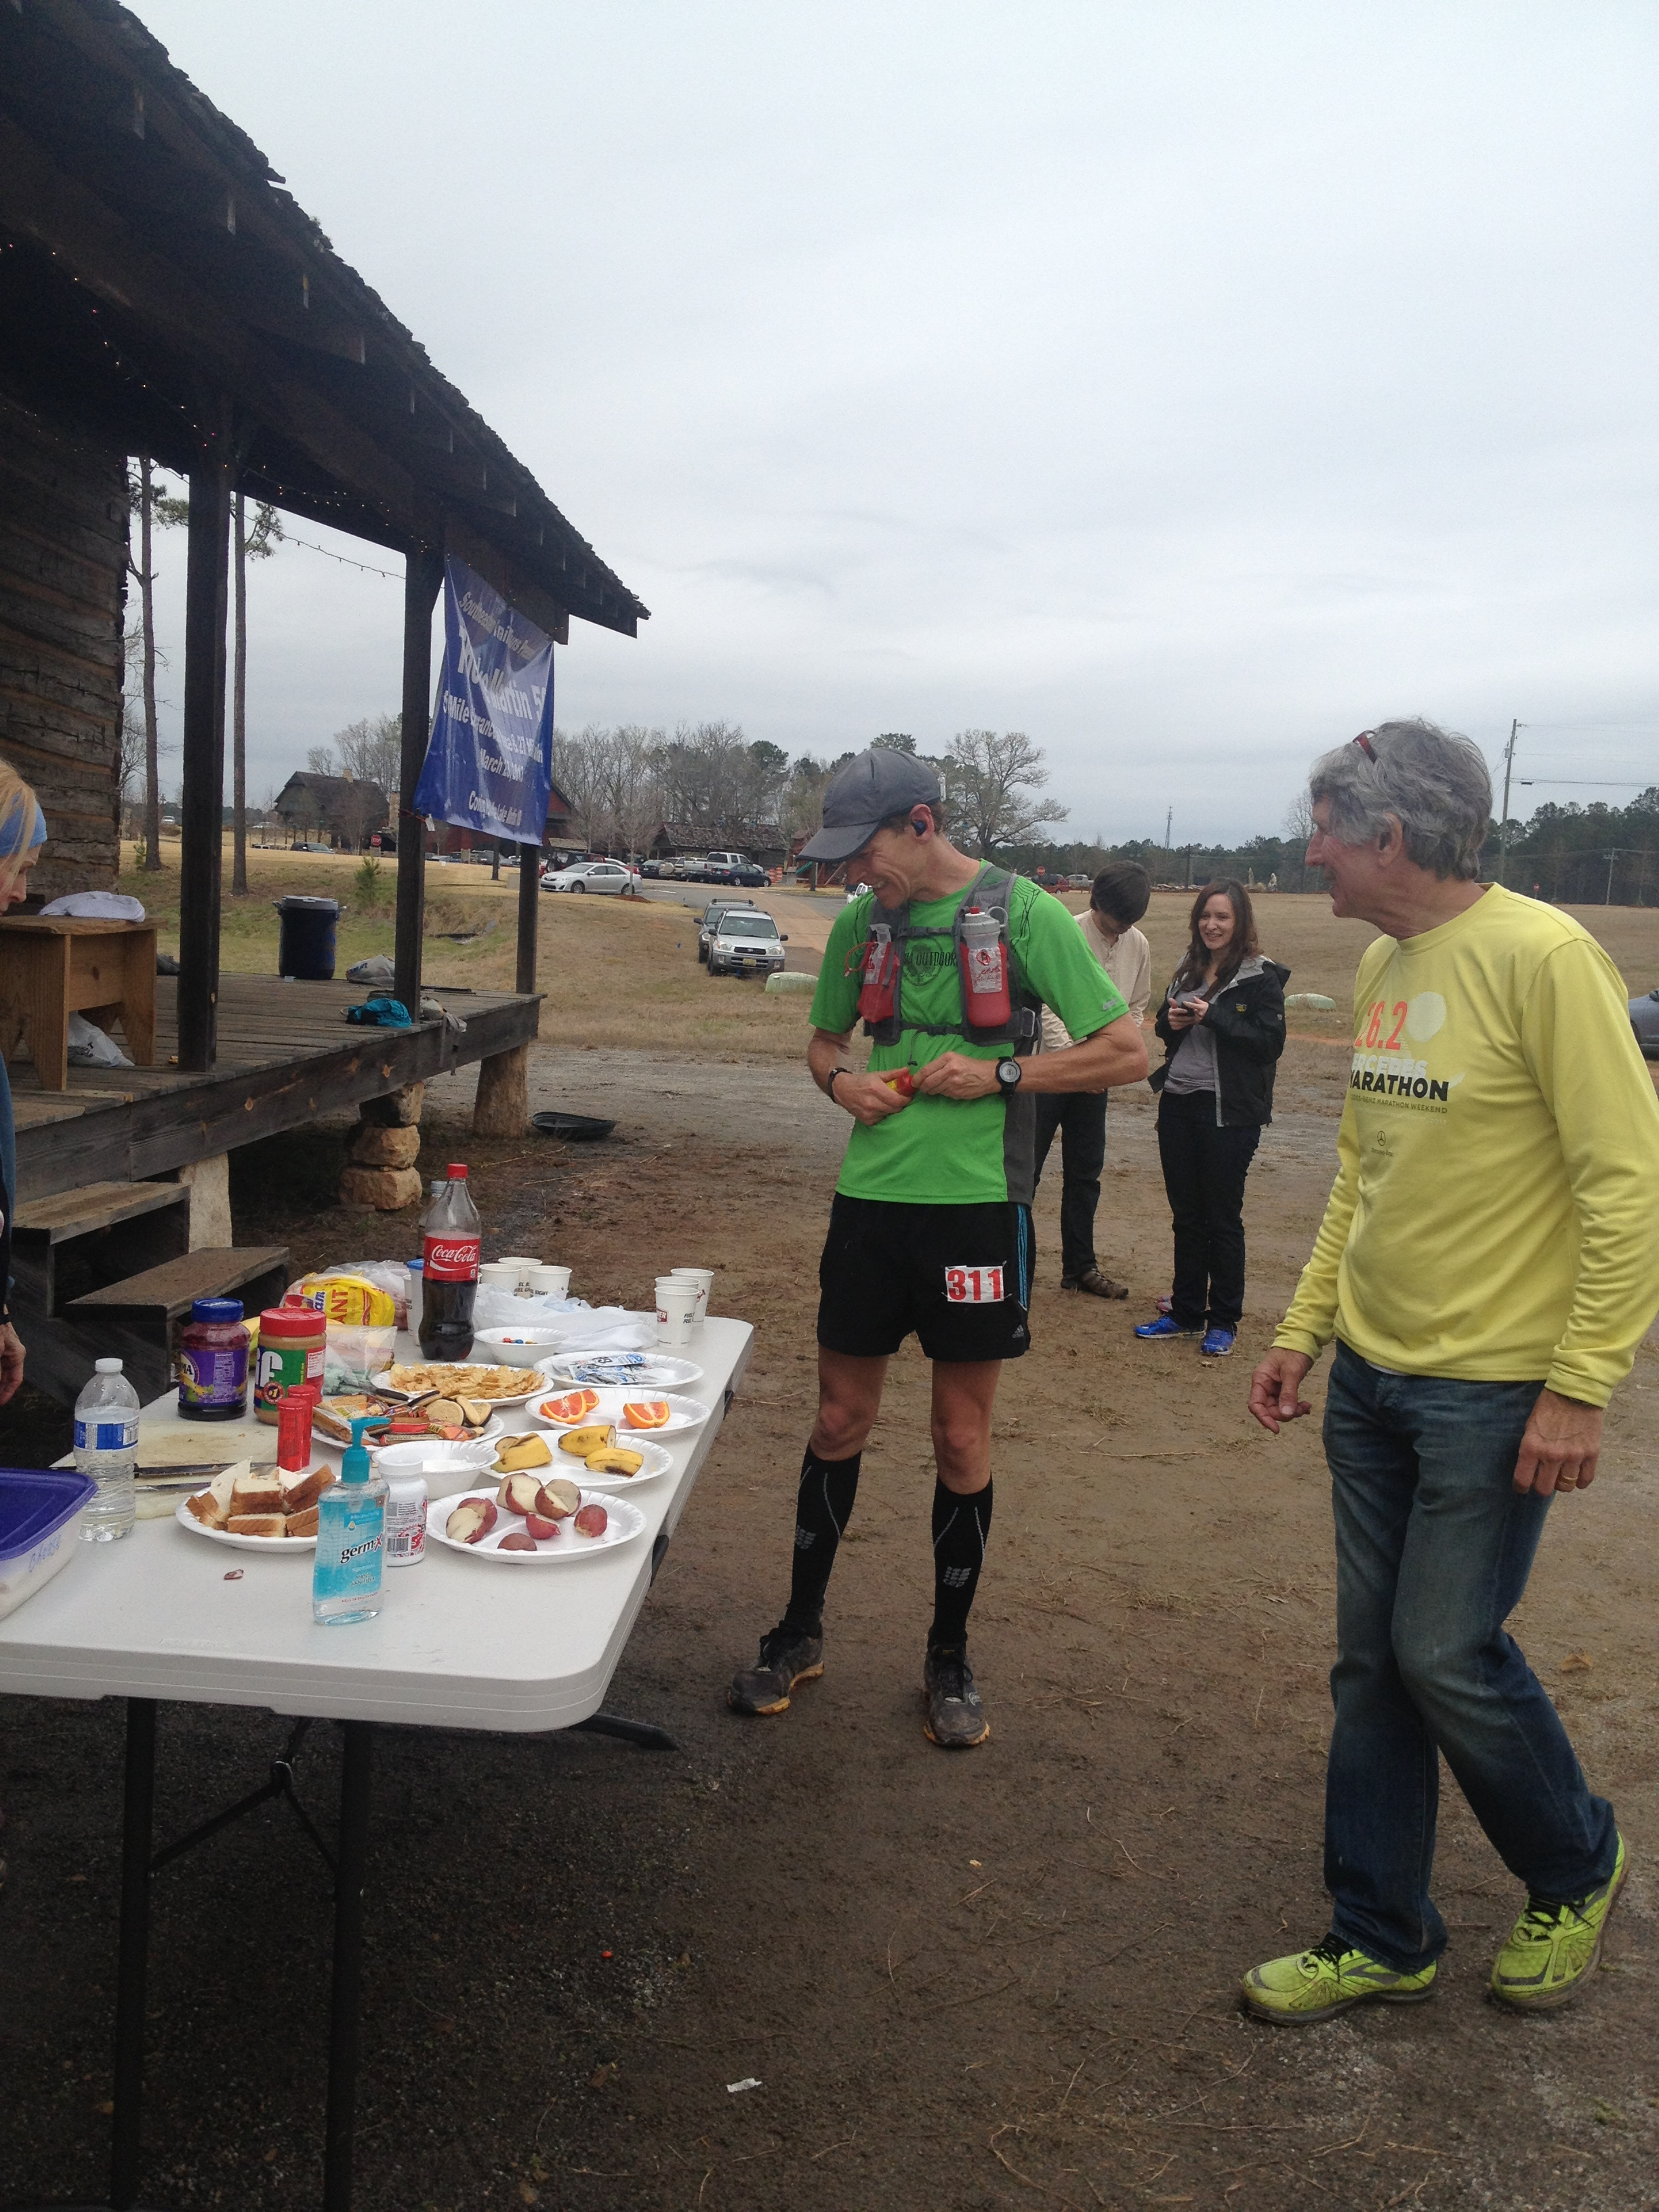 Lake Martin 50, ultramarathon, ultrarunning, sweeping a race, Southeast Trail Series, fun run, race volunteer,